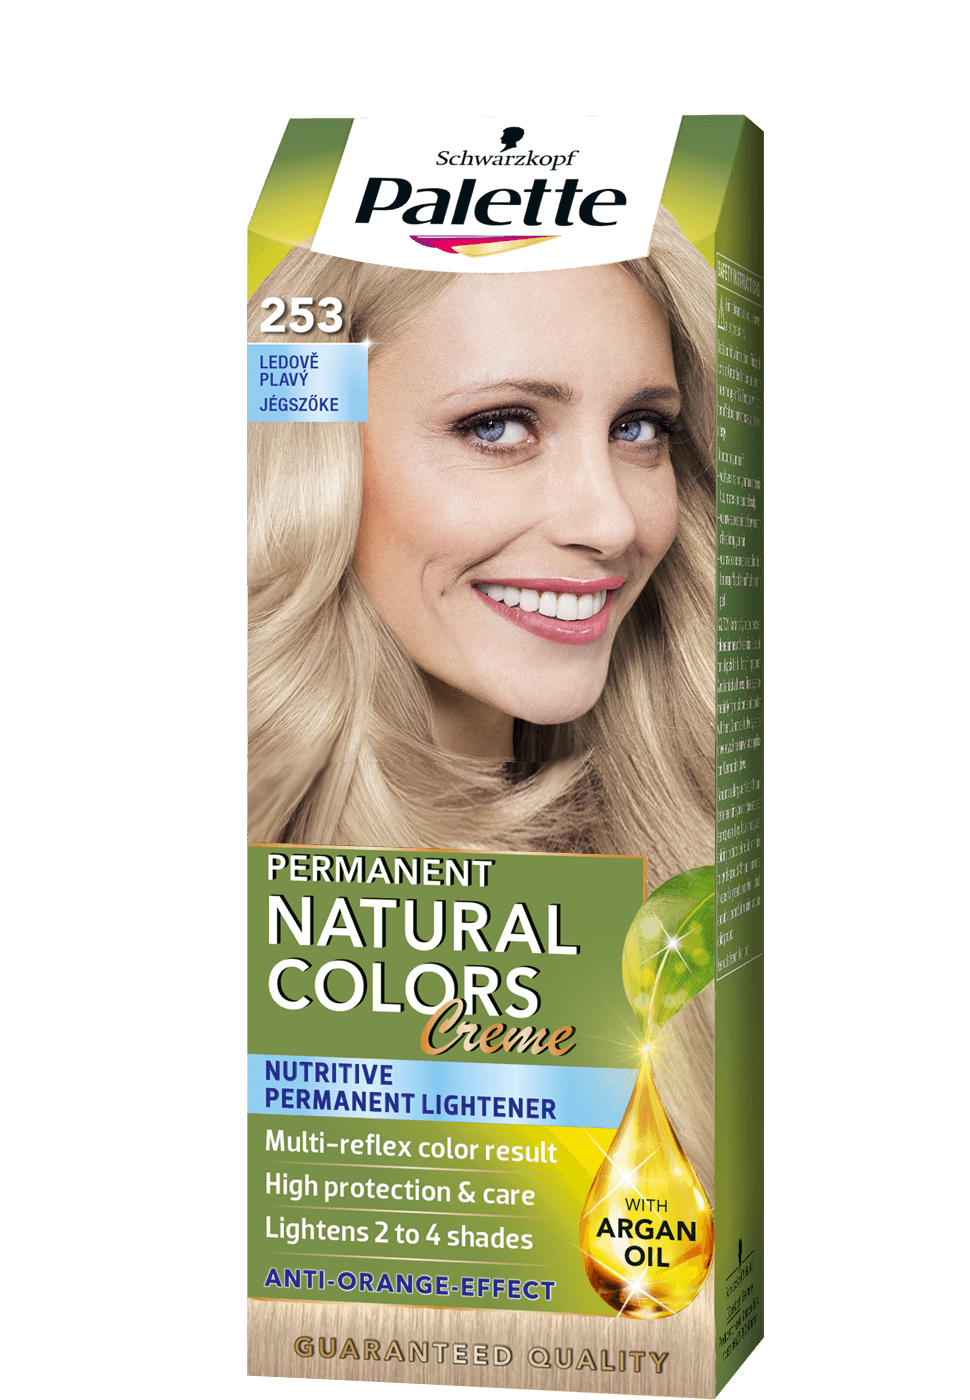 Permanent Natural Colors 253 - Jégszőke